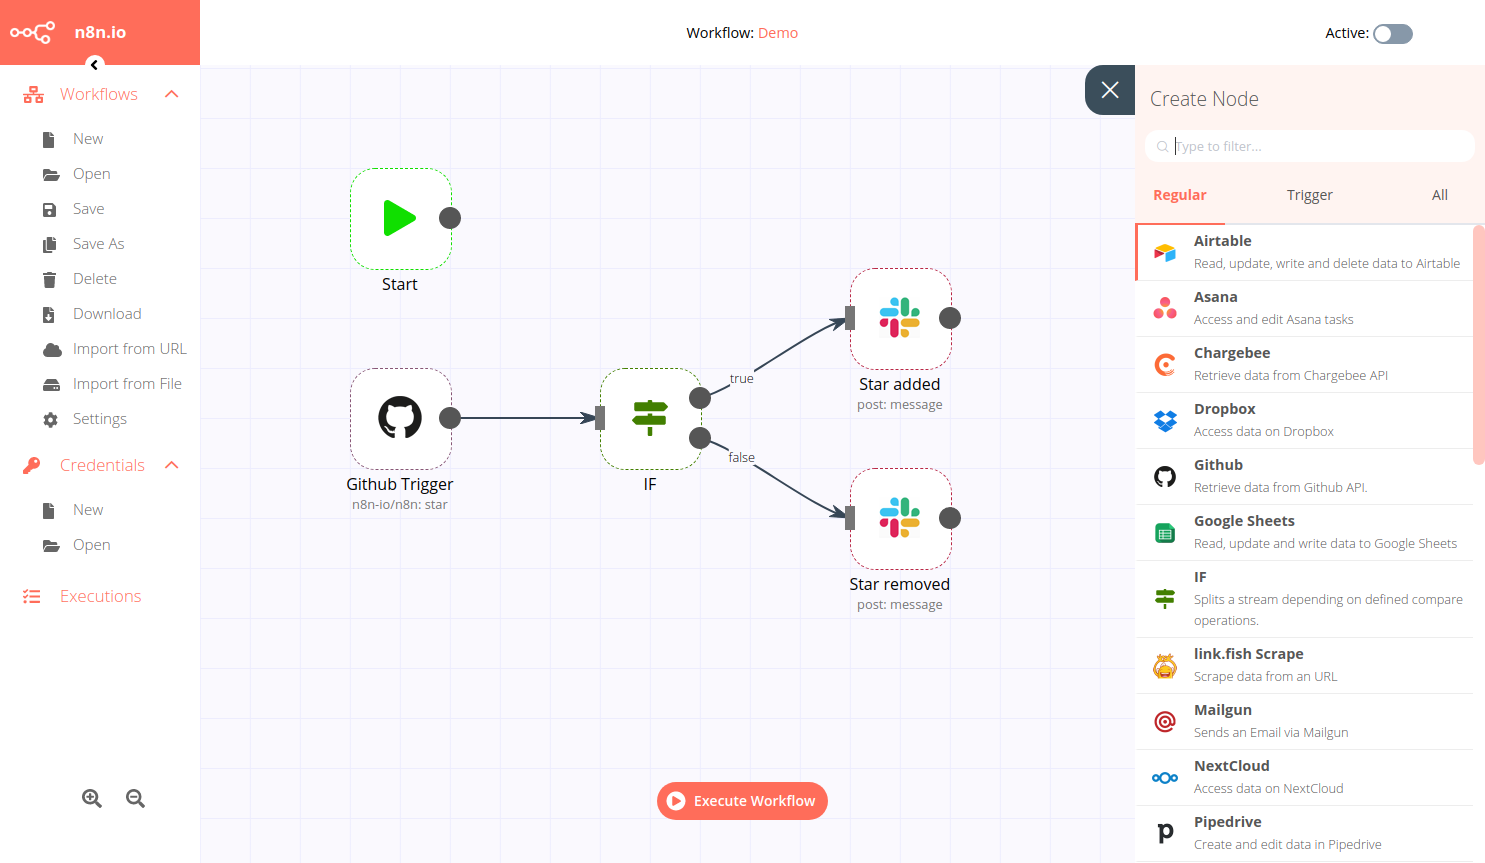 workflow automation tool